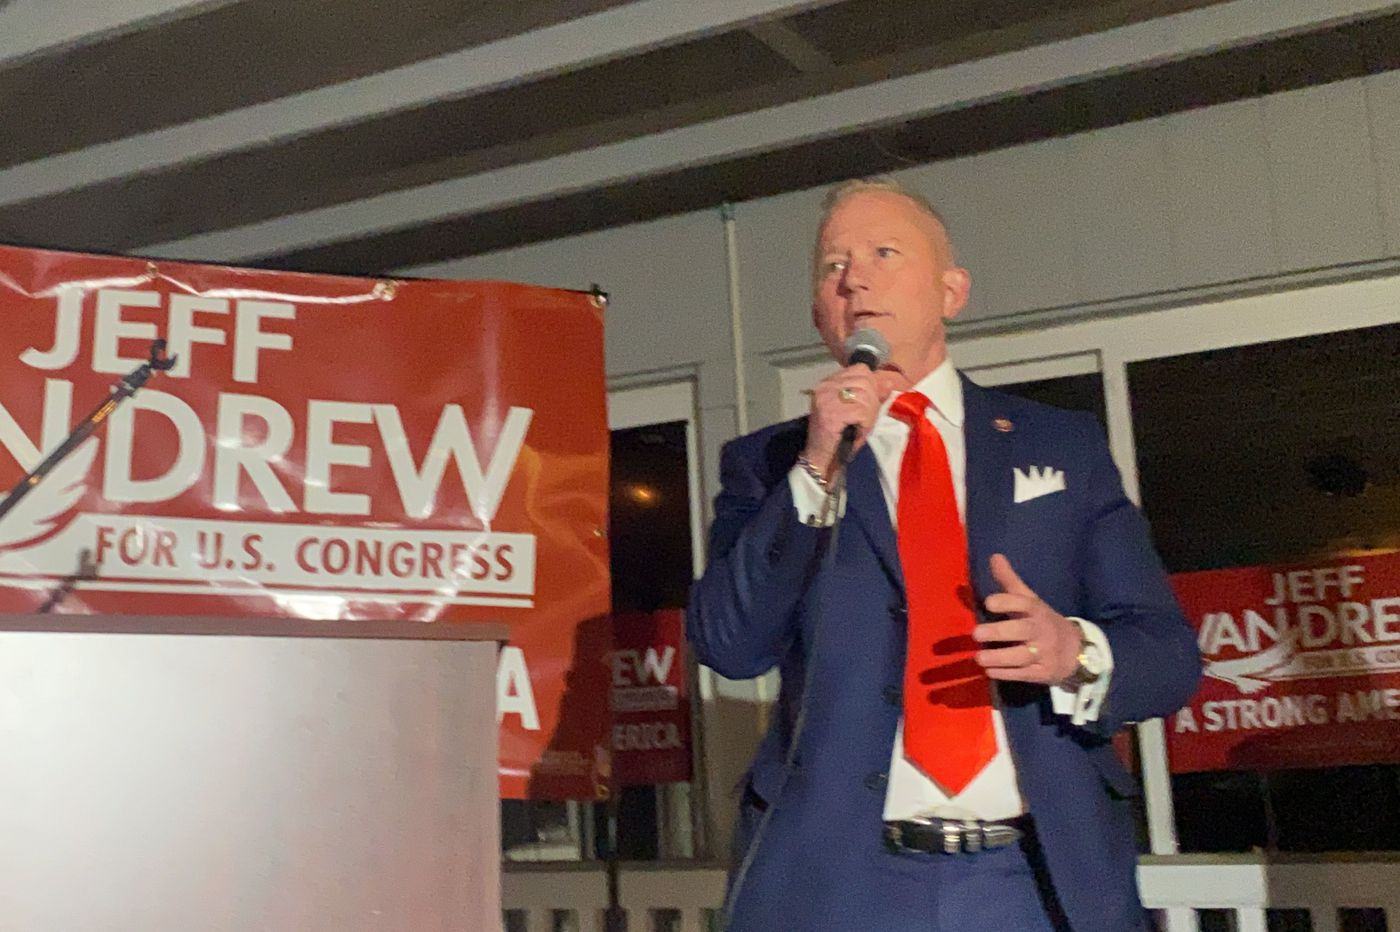 U.S. Rep. Jeff Van Drew leading in tight race against Amy Kennedy in New Jersey's 2nd Congressional District